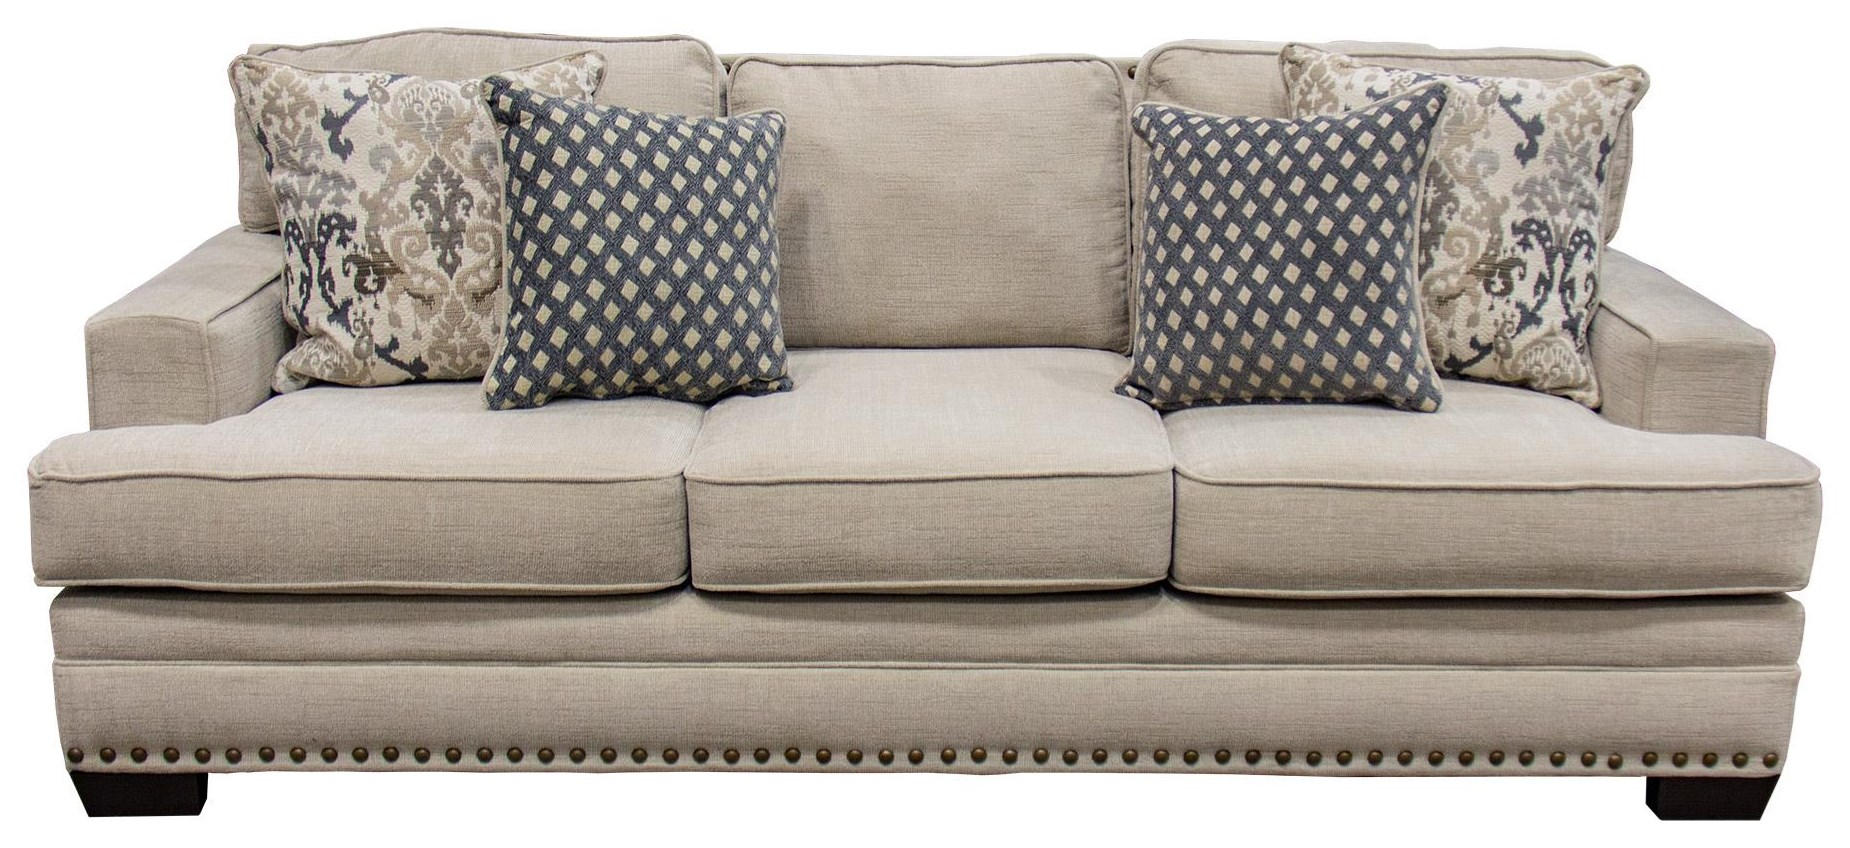 Behold Home Braxton Braxton Sofa - Item Number: 1020-03-1408-03